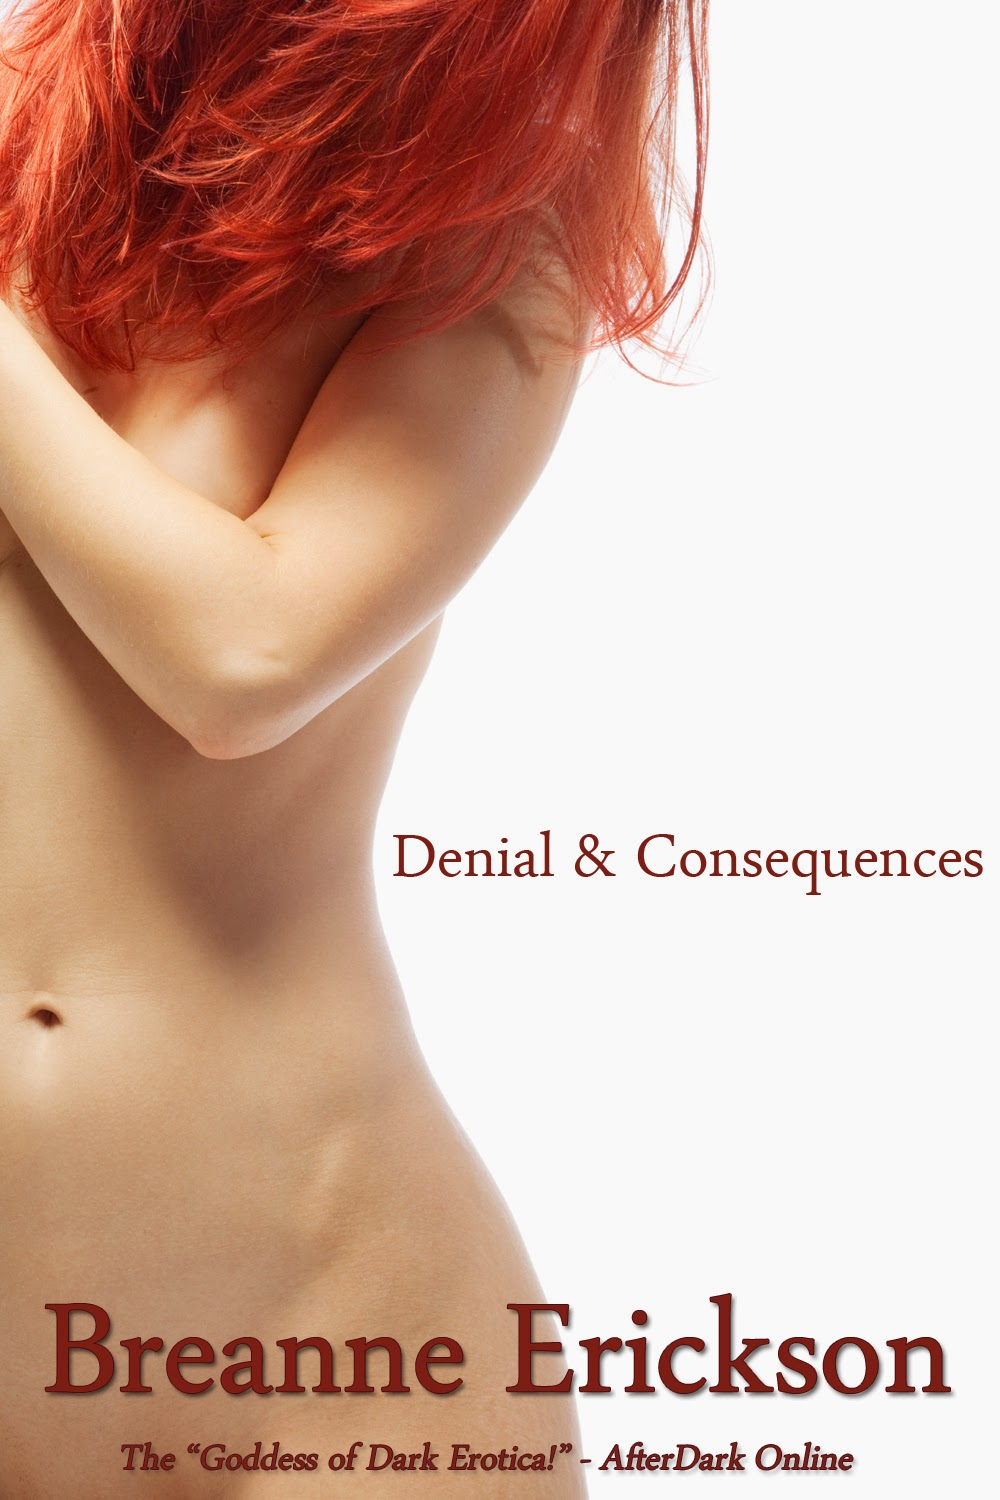 Denial and Consequences